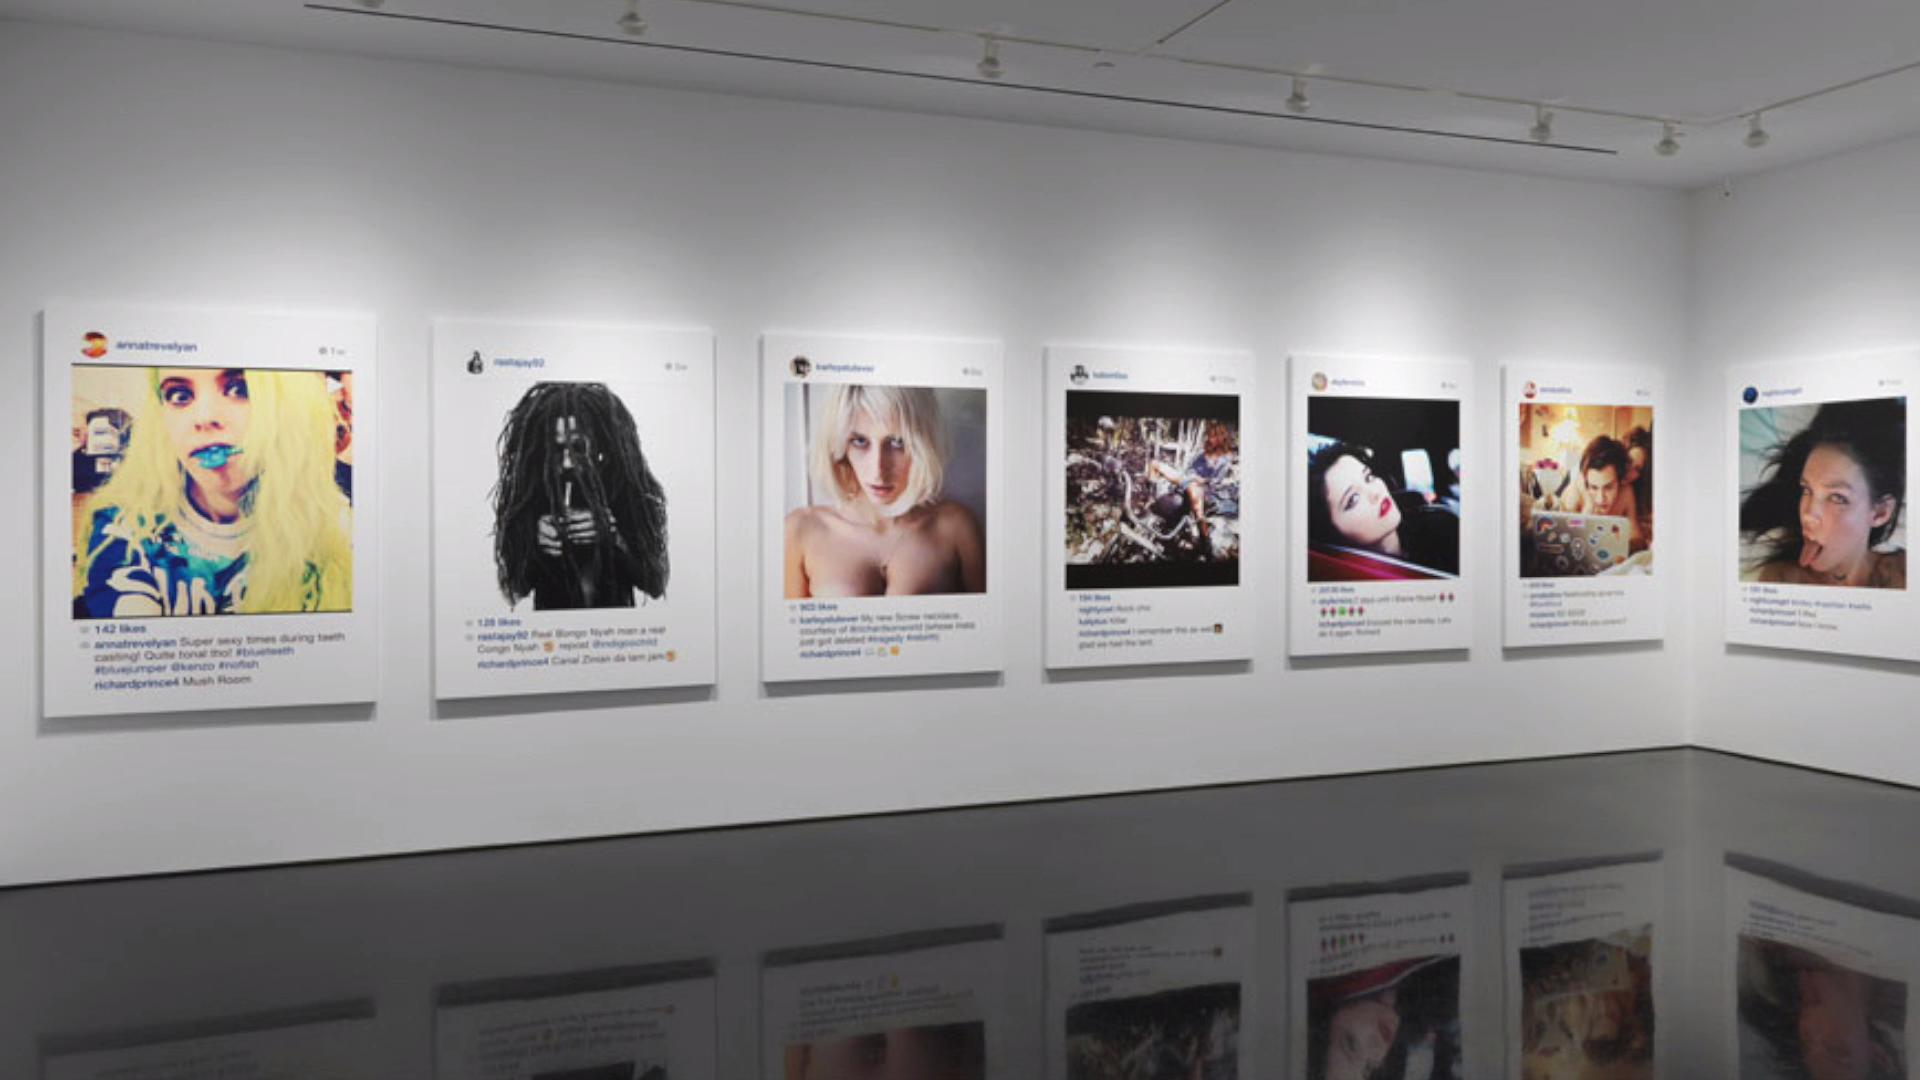 'Artist' sells other people's Instagram photos for $90,000